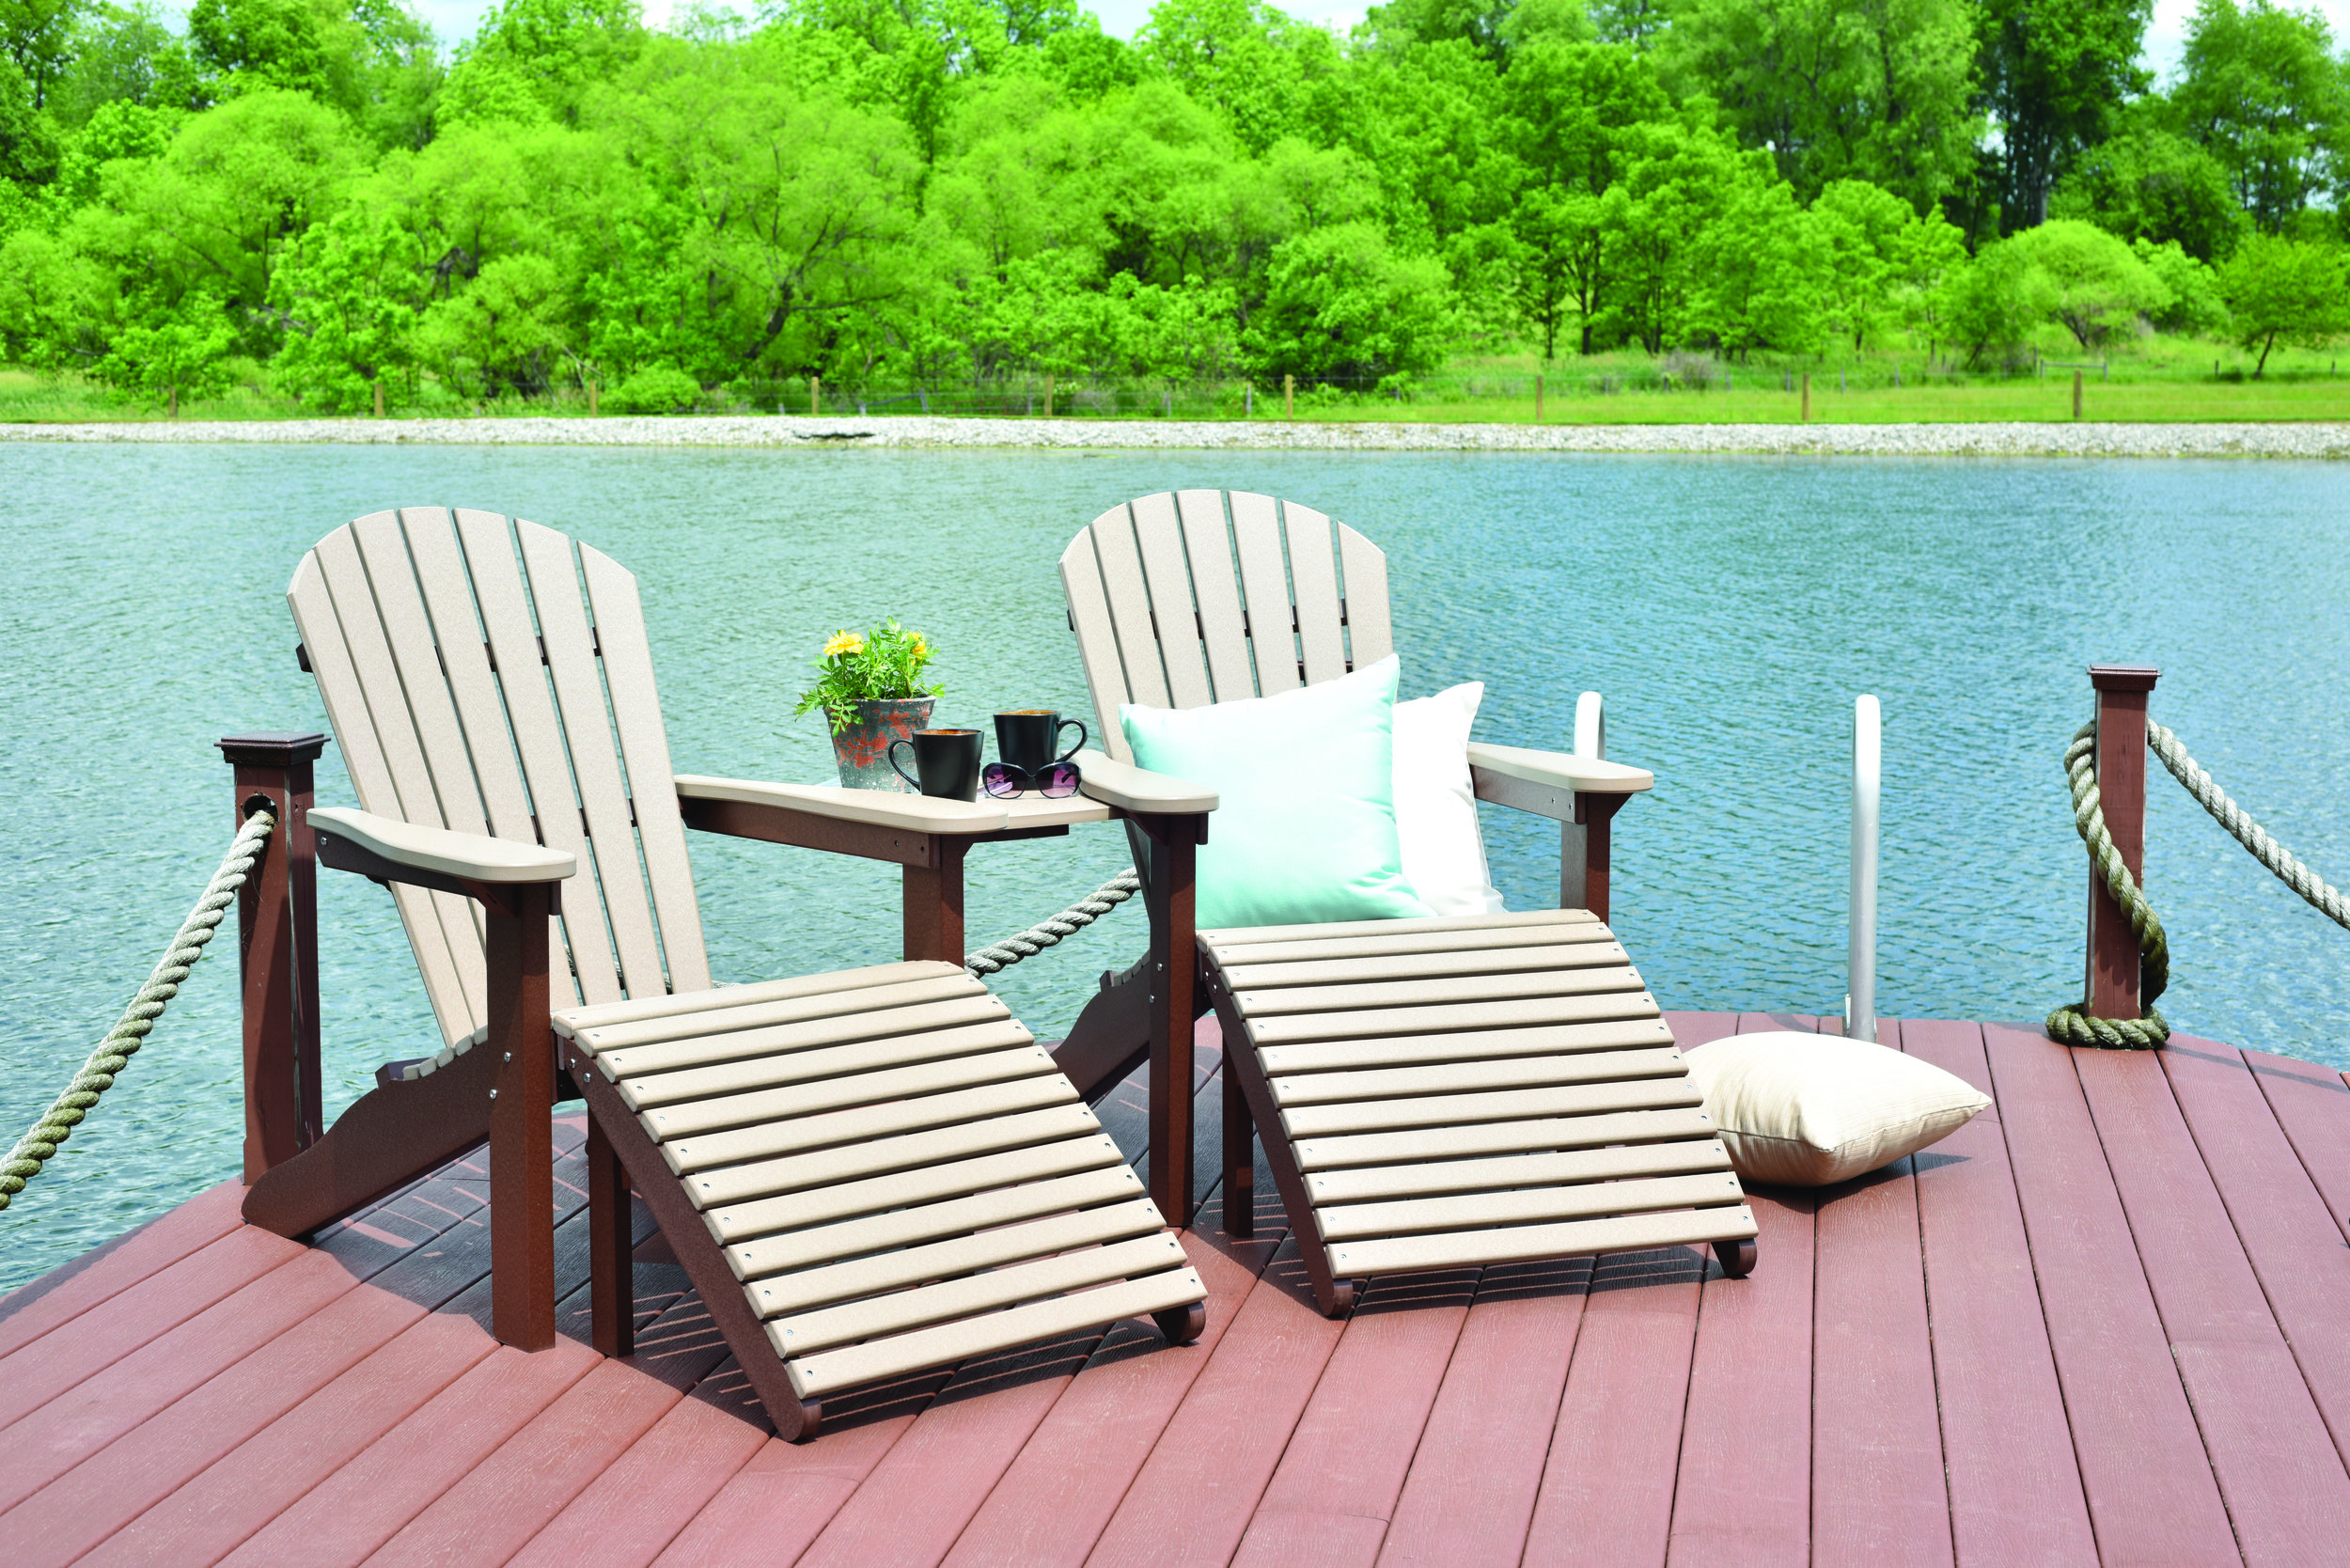 Adirondack Collection - Traditional Adirondack seating, crafted from recycled Poly & Stainless Steel fasteners. Chairs, end-tables, footstools & accessories.